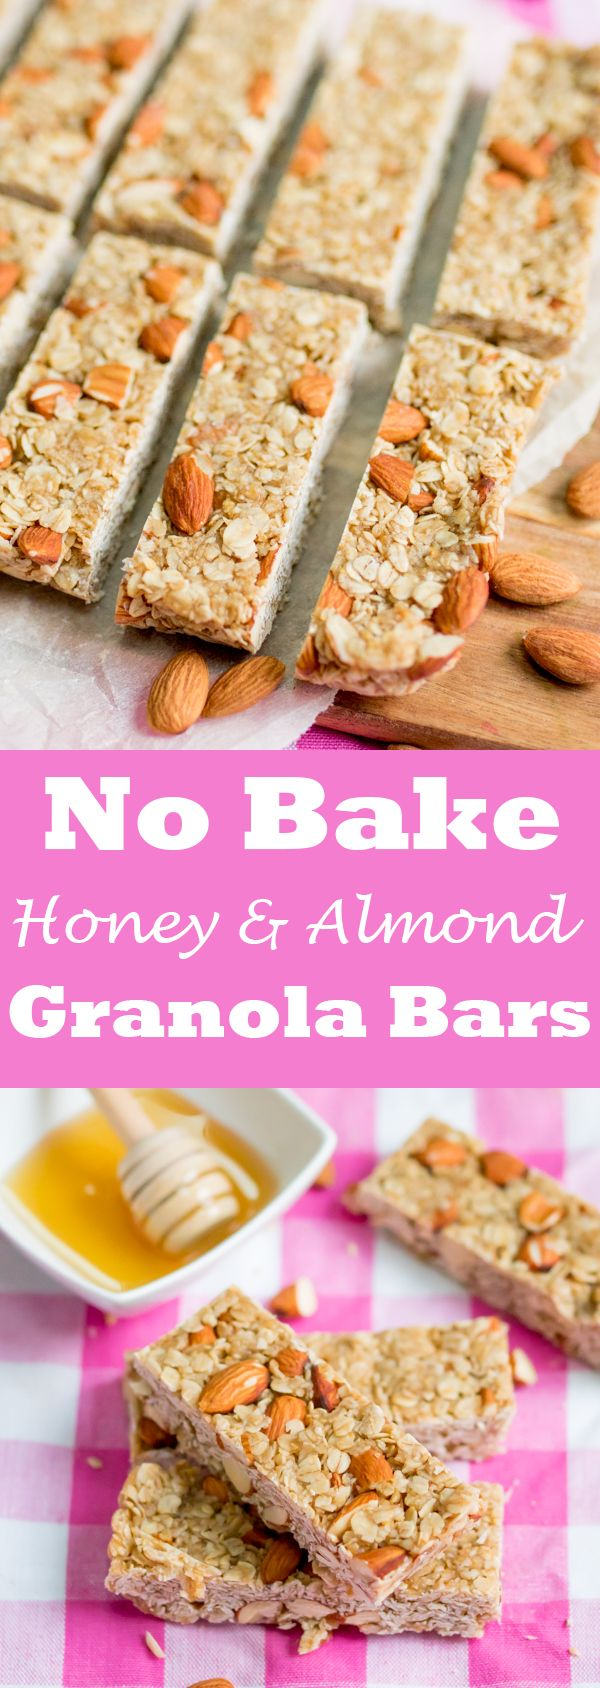 NO-BAKE HONEY and Almond GRANOLA BARS – a simple recipe for breakfast on the go!